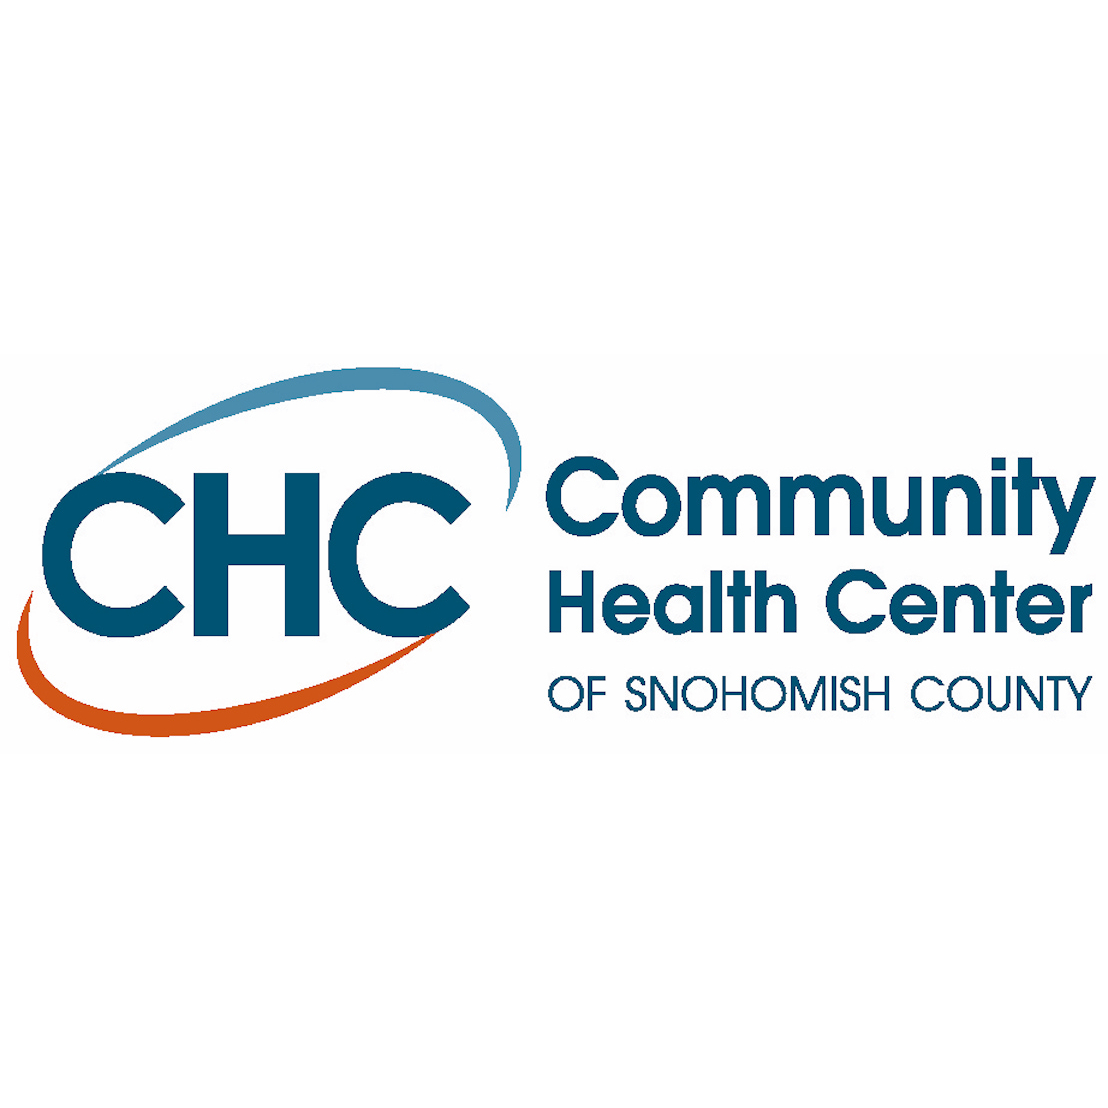 Community Health Center of Snohomish County - Everett-South Medical - Everett, WA - Business & Secretarial